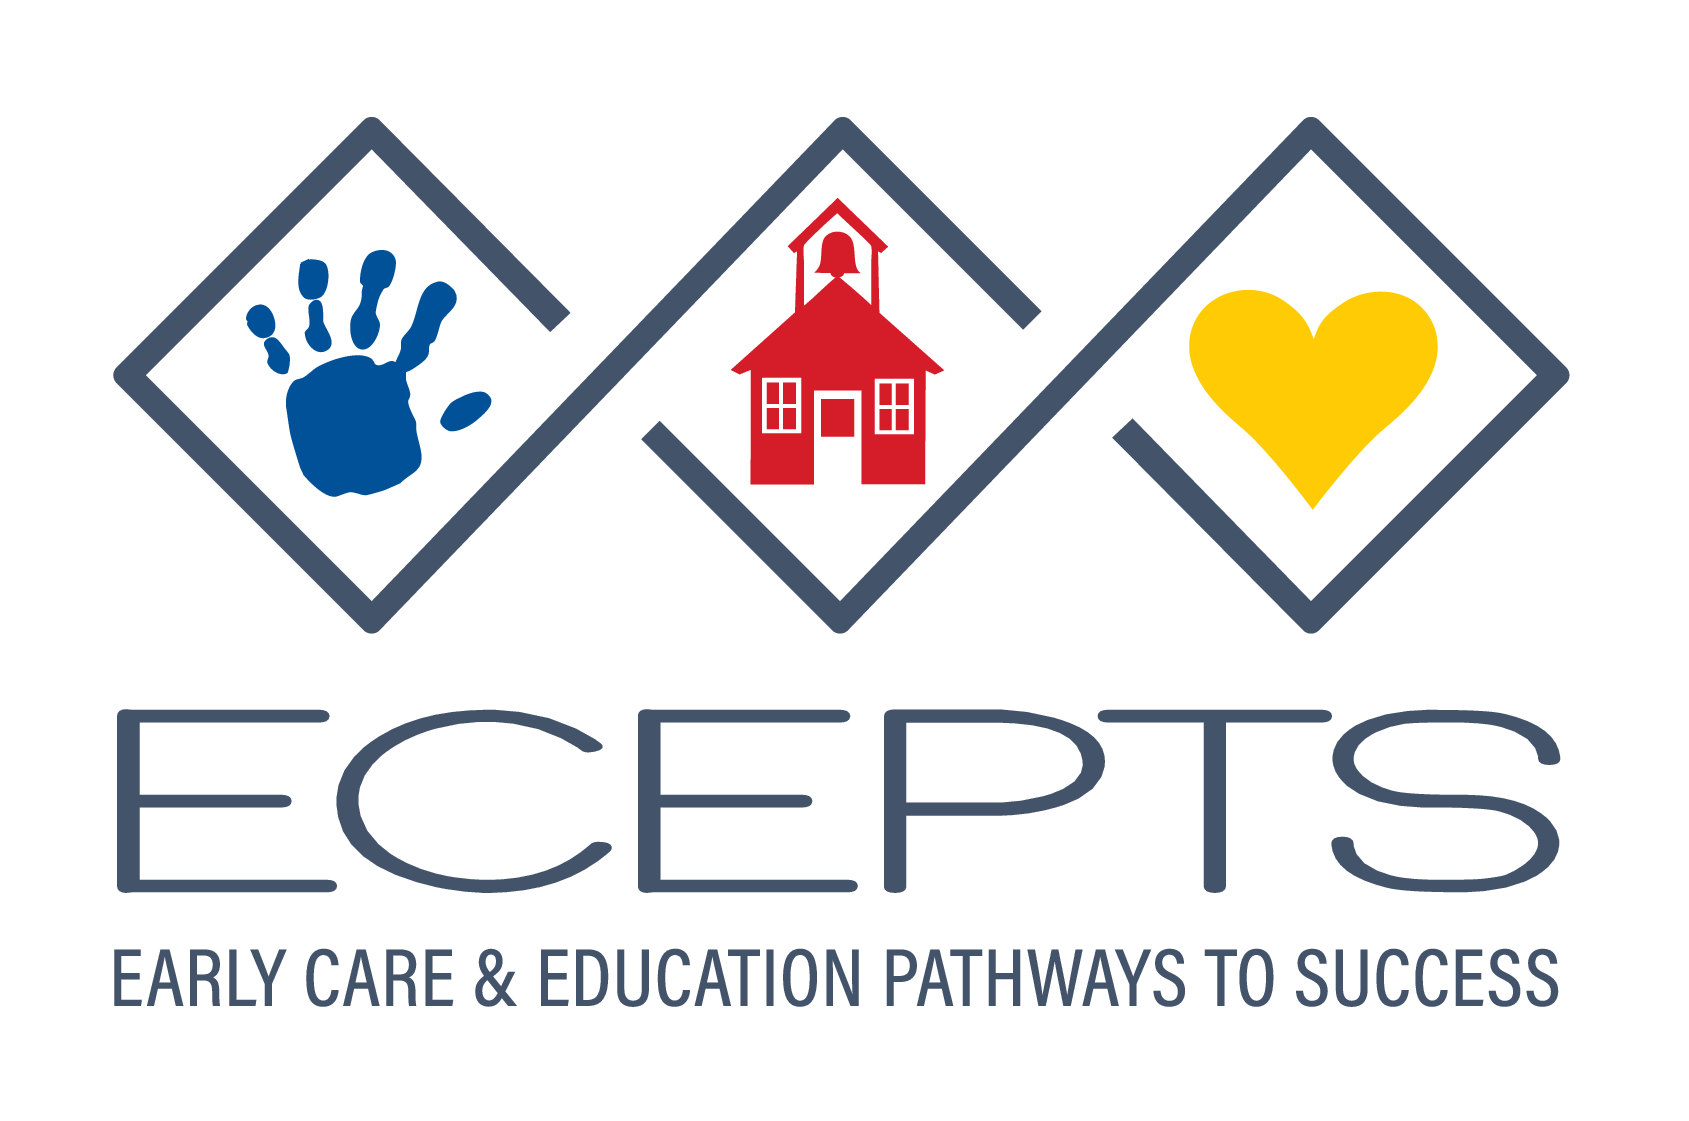 Early Care & Education Pathways to Success